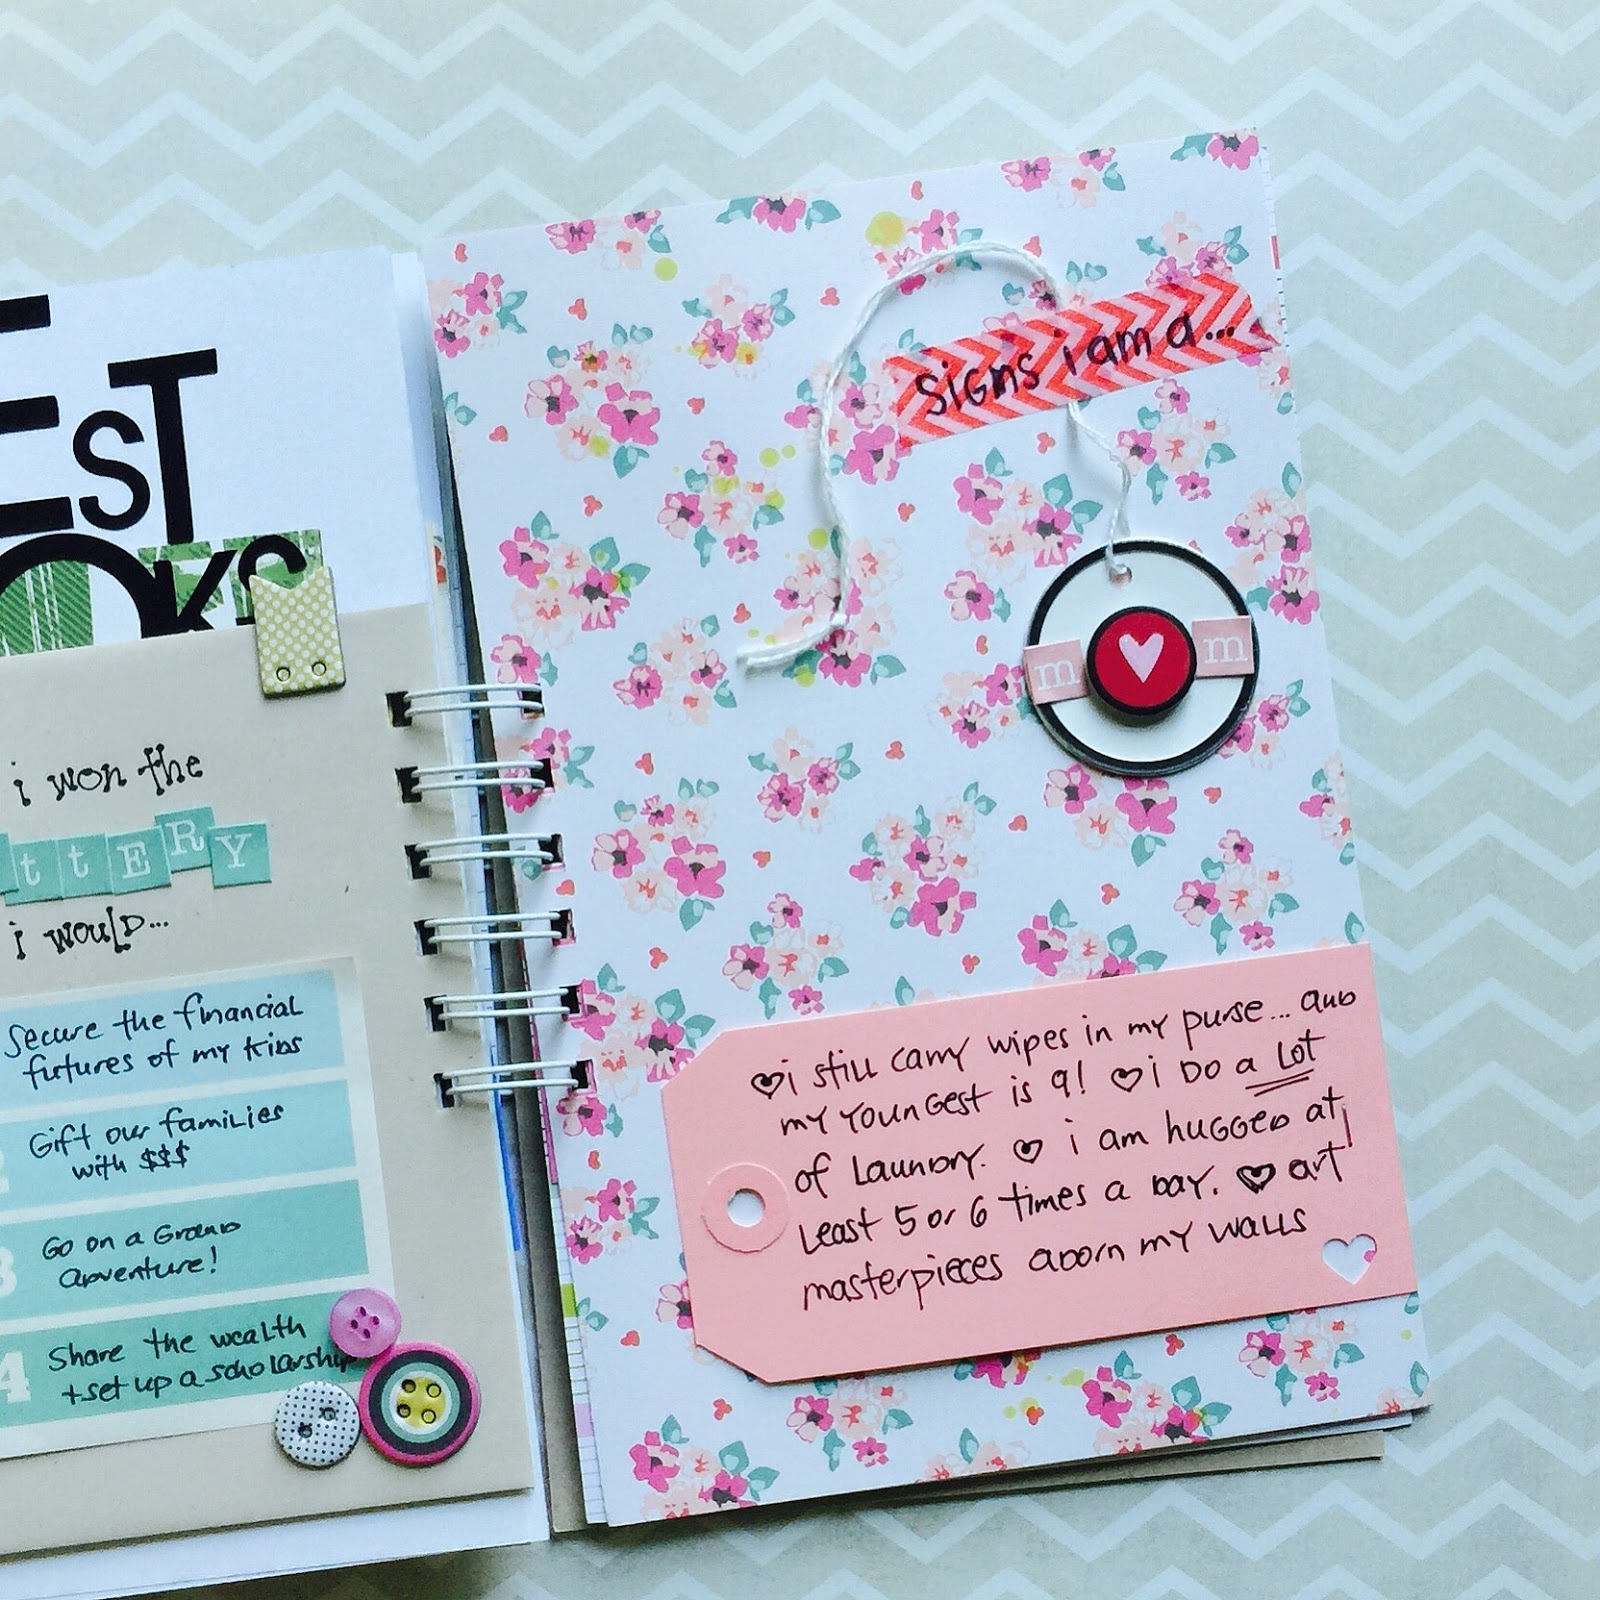 #smashbook #mixedmedia #journaling #lists #mini album #mom